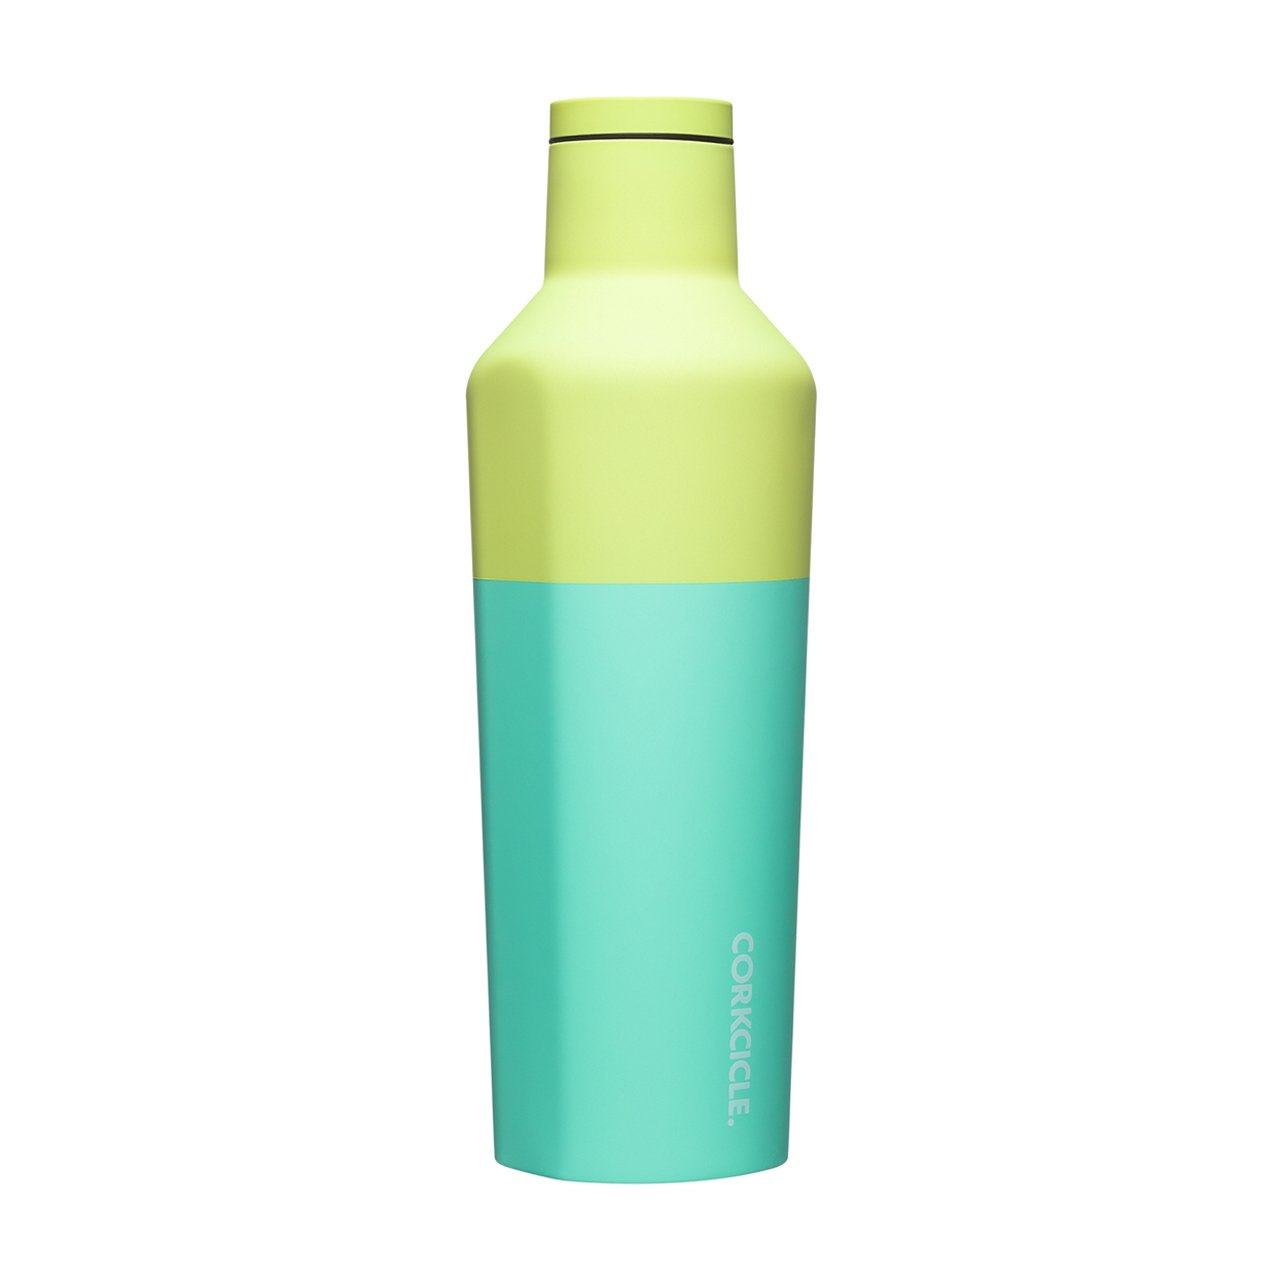 CORKCICLE. Láhev Canteen Color Block – Limeade